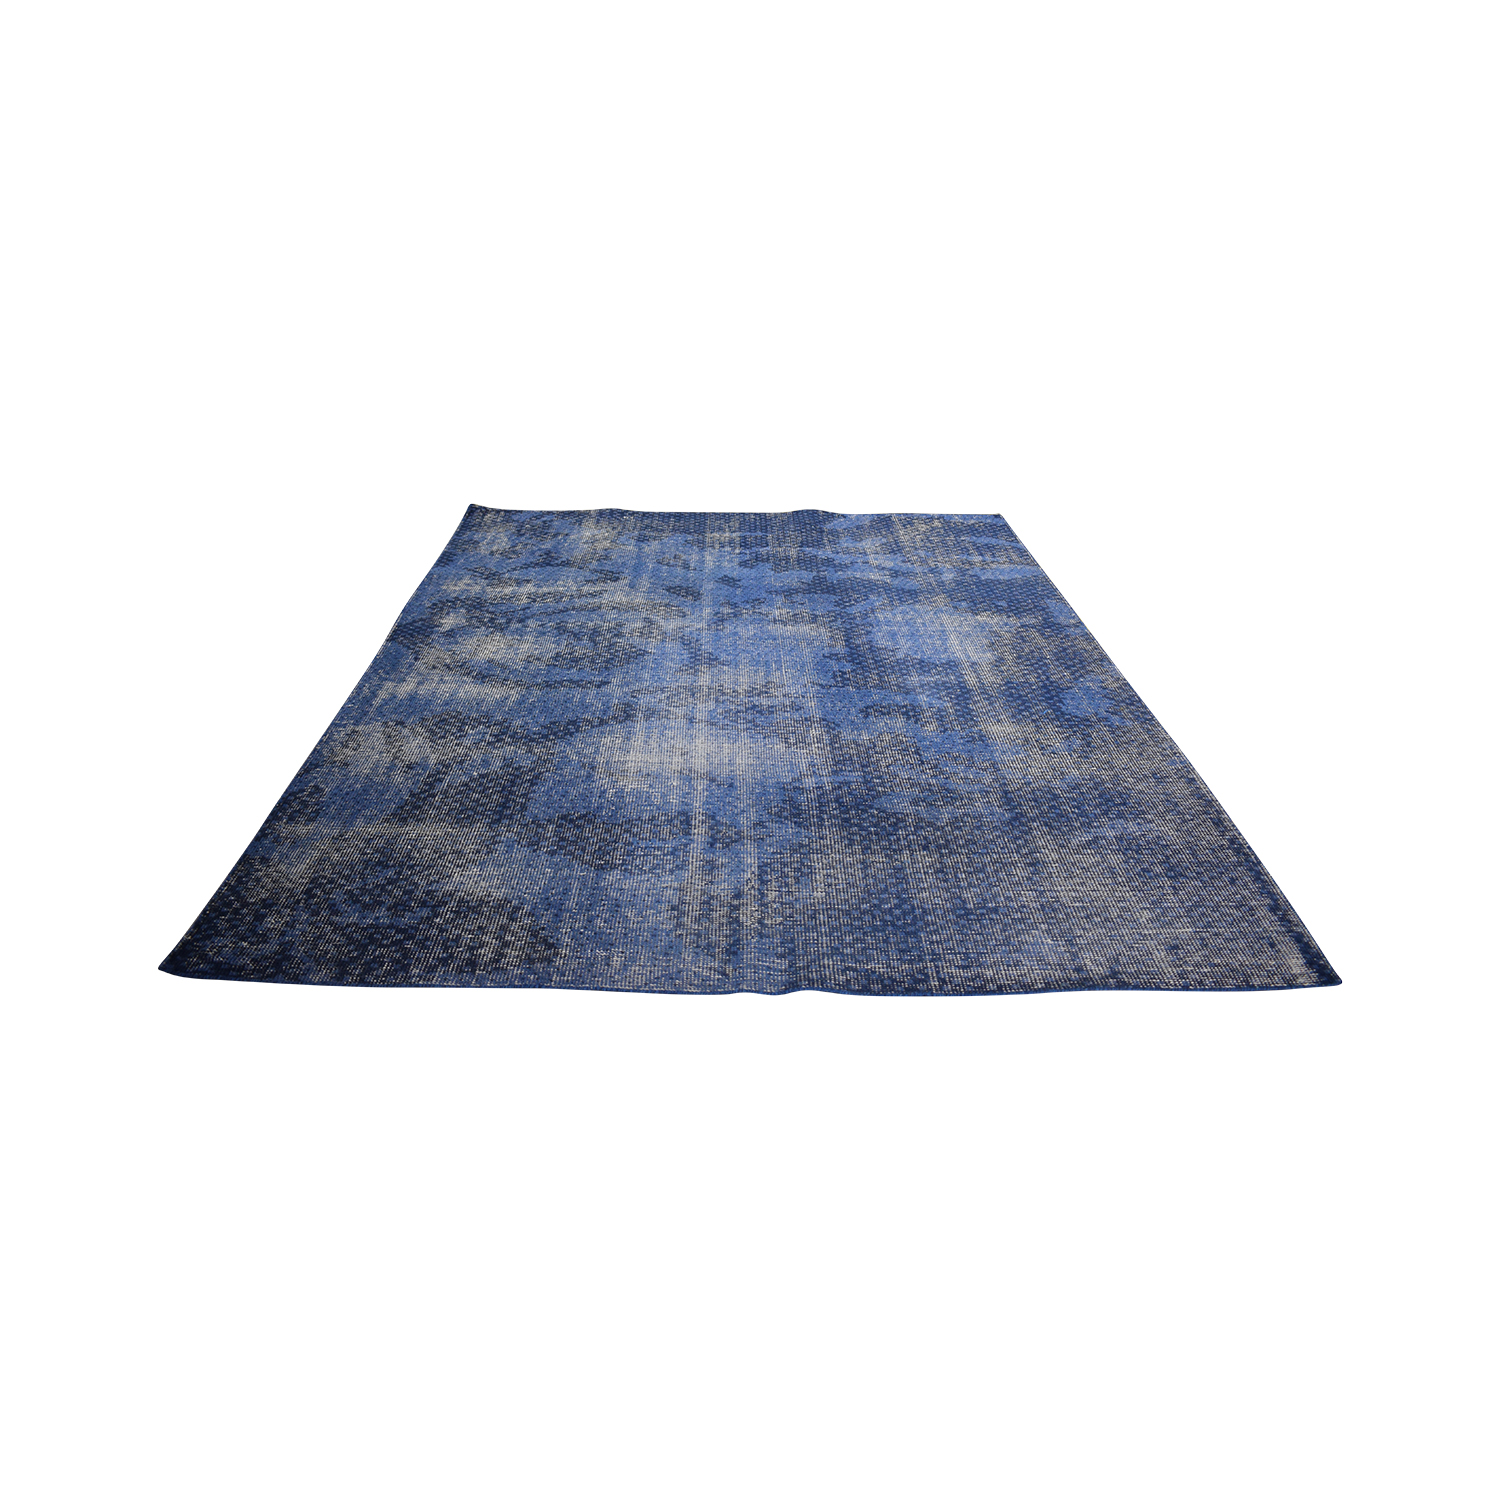 shop CB2 CB2 The Hill-Side Disintegrated Blue Floral Rug online